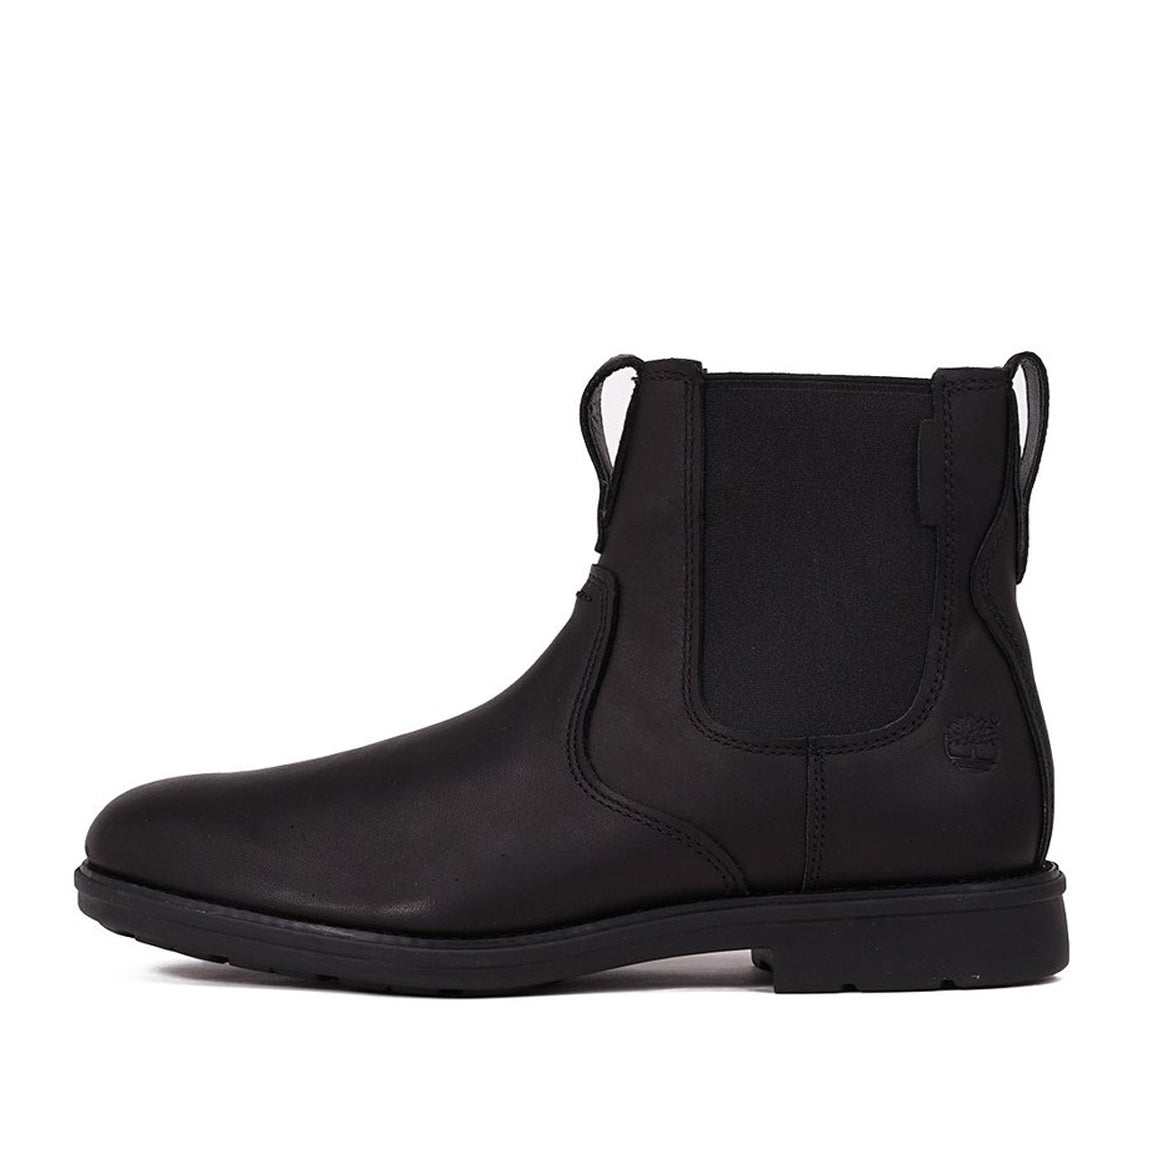 CARTER NOTCH PLAIN TOE CHELSEA BOOT - BLACK